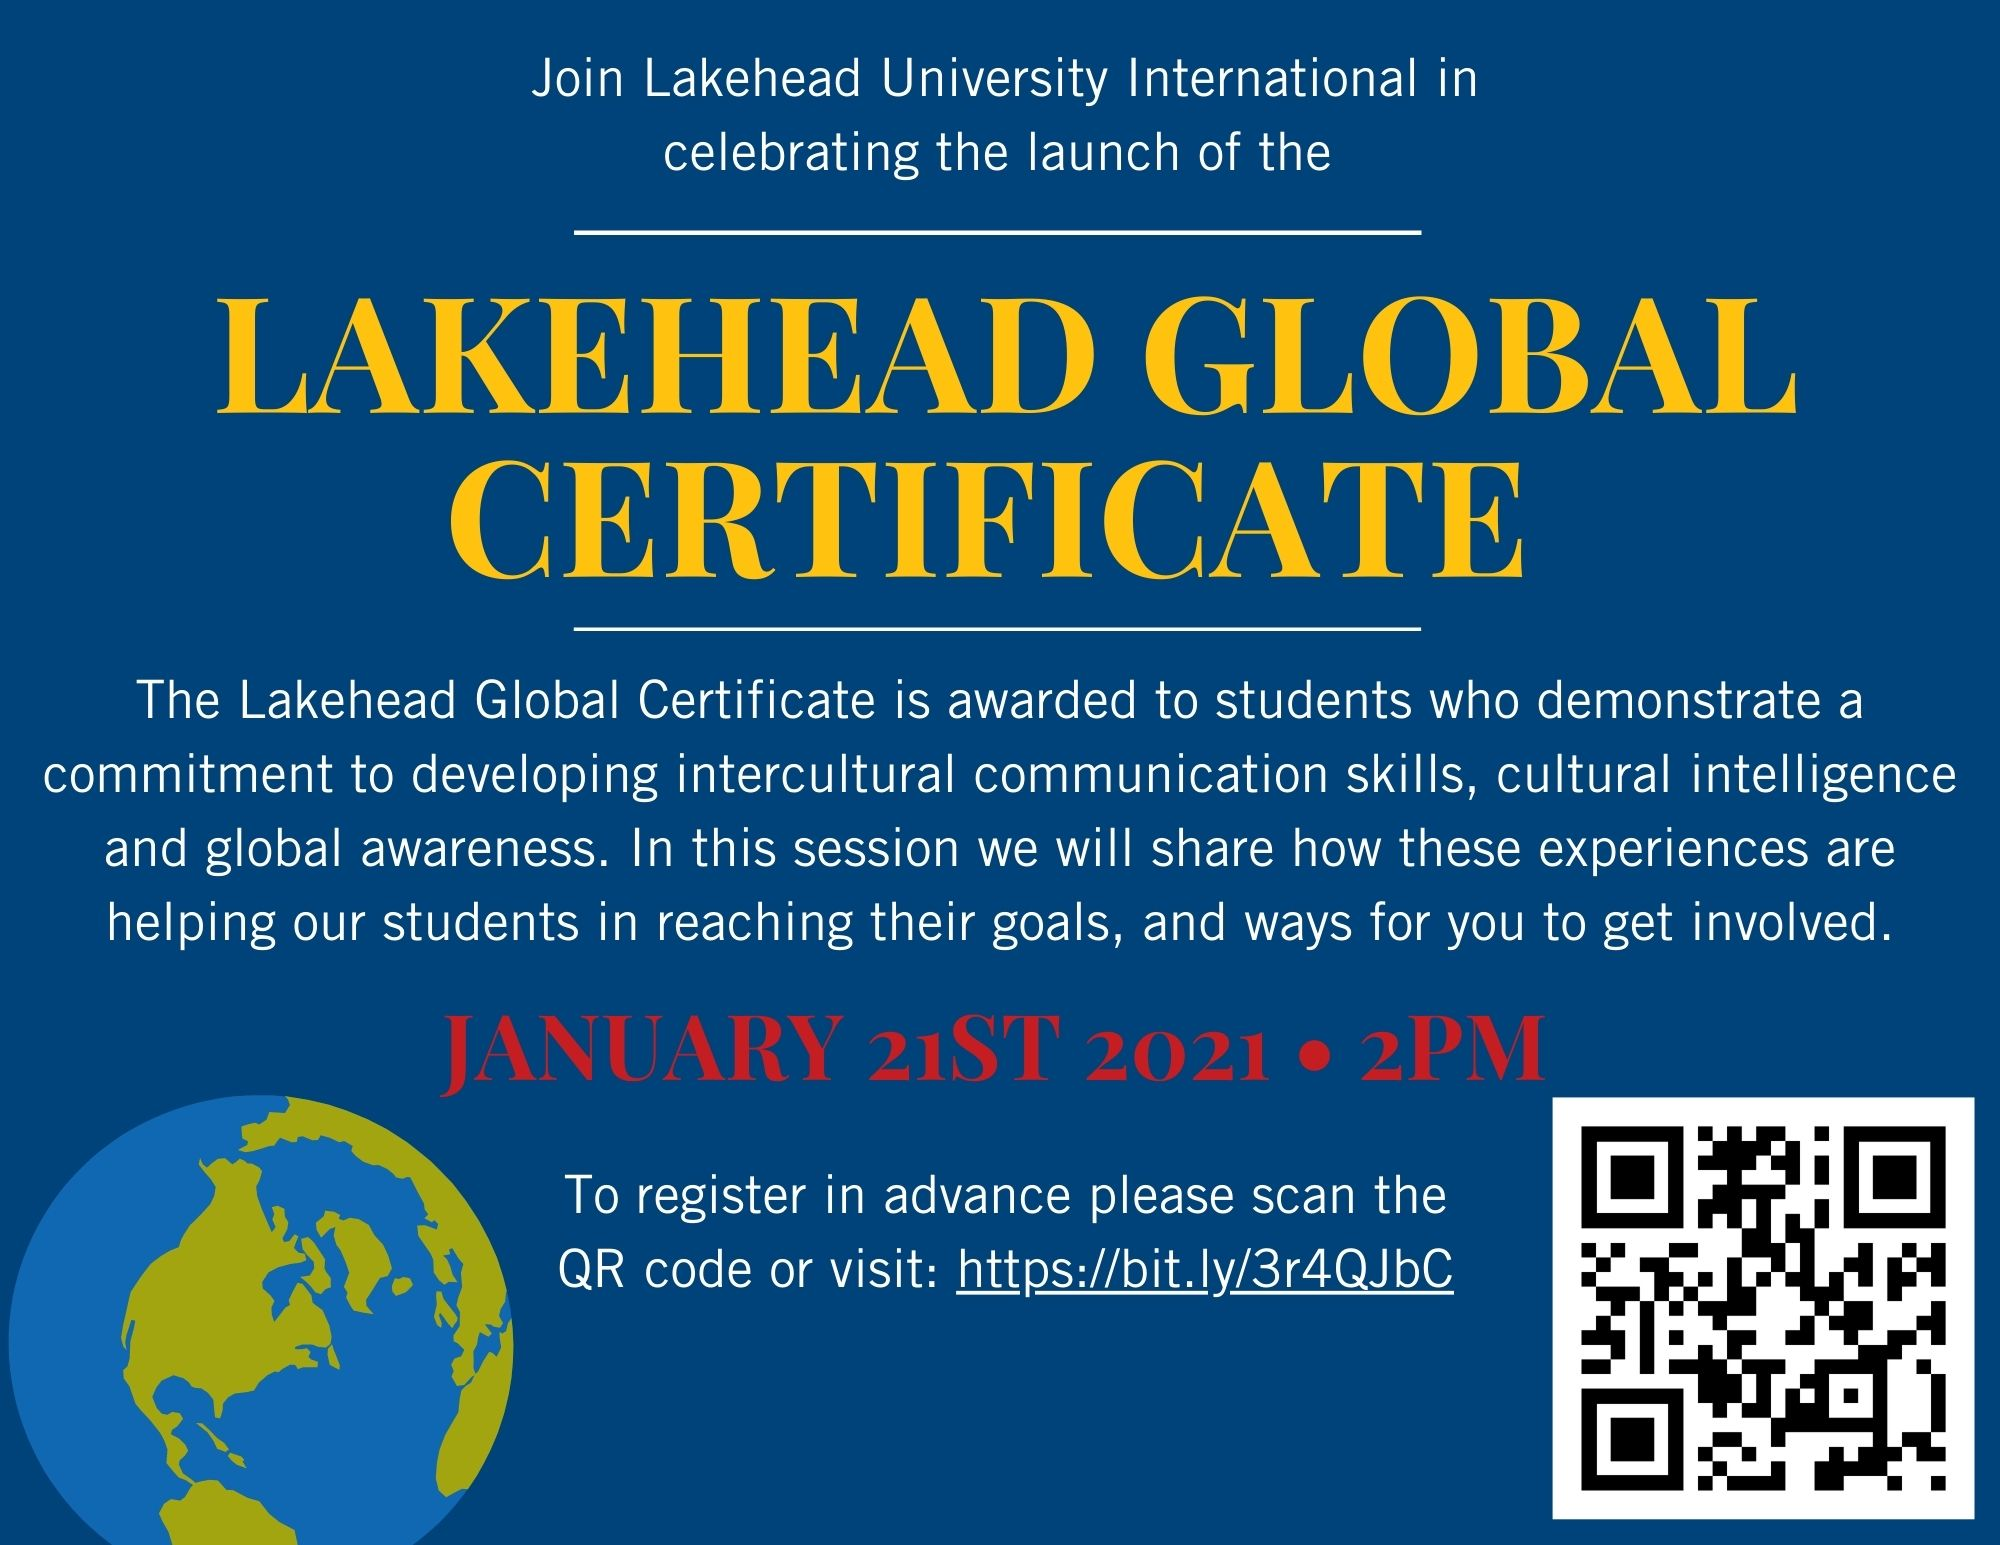 Join Lakehead University International in celebrating the launch of the Lakehead Global Certificate